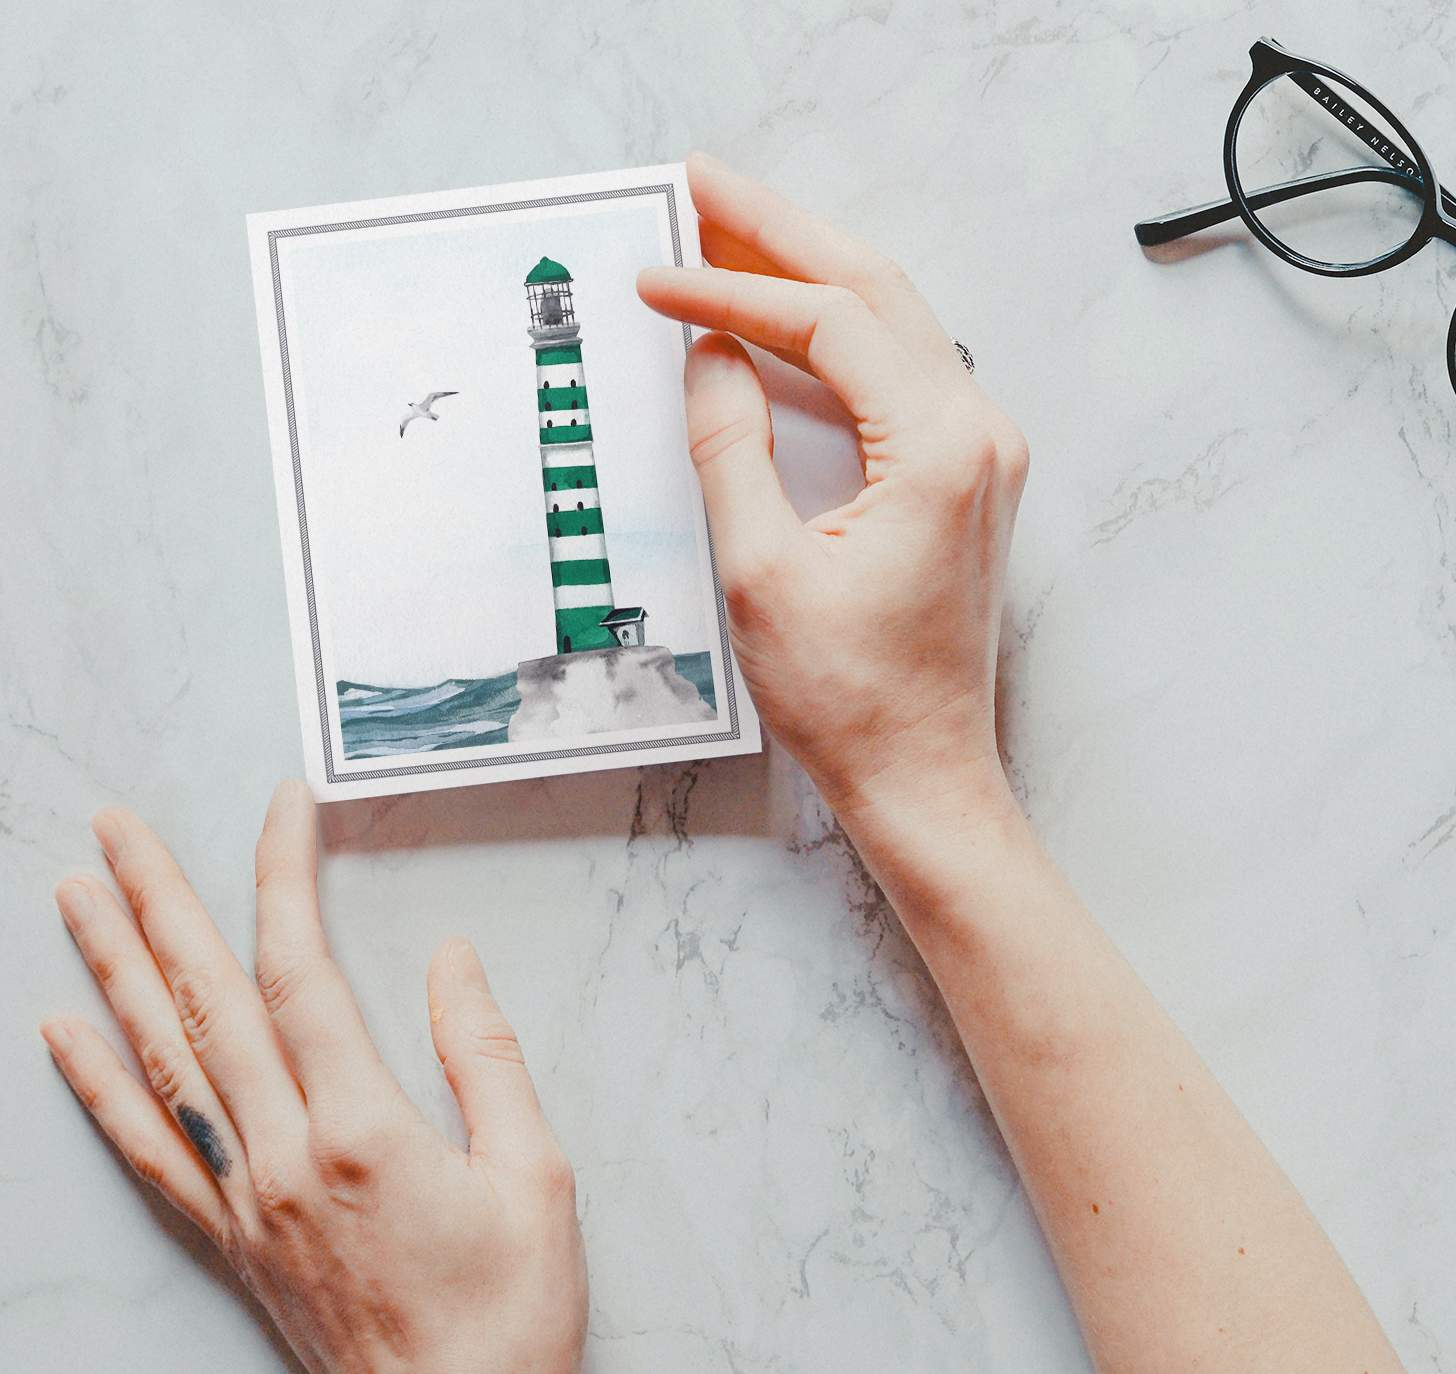 Hands holding Green striped lighthouse design with ocean card with marble background